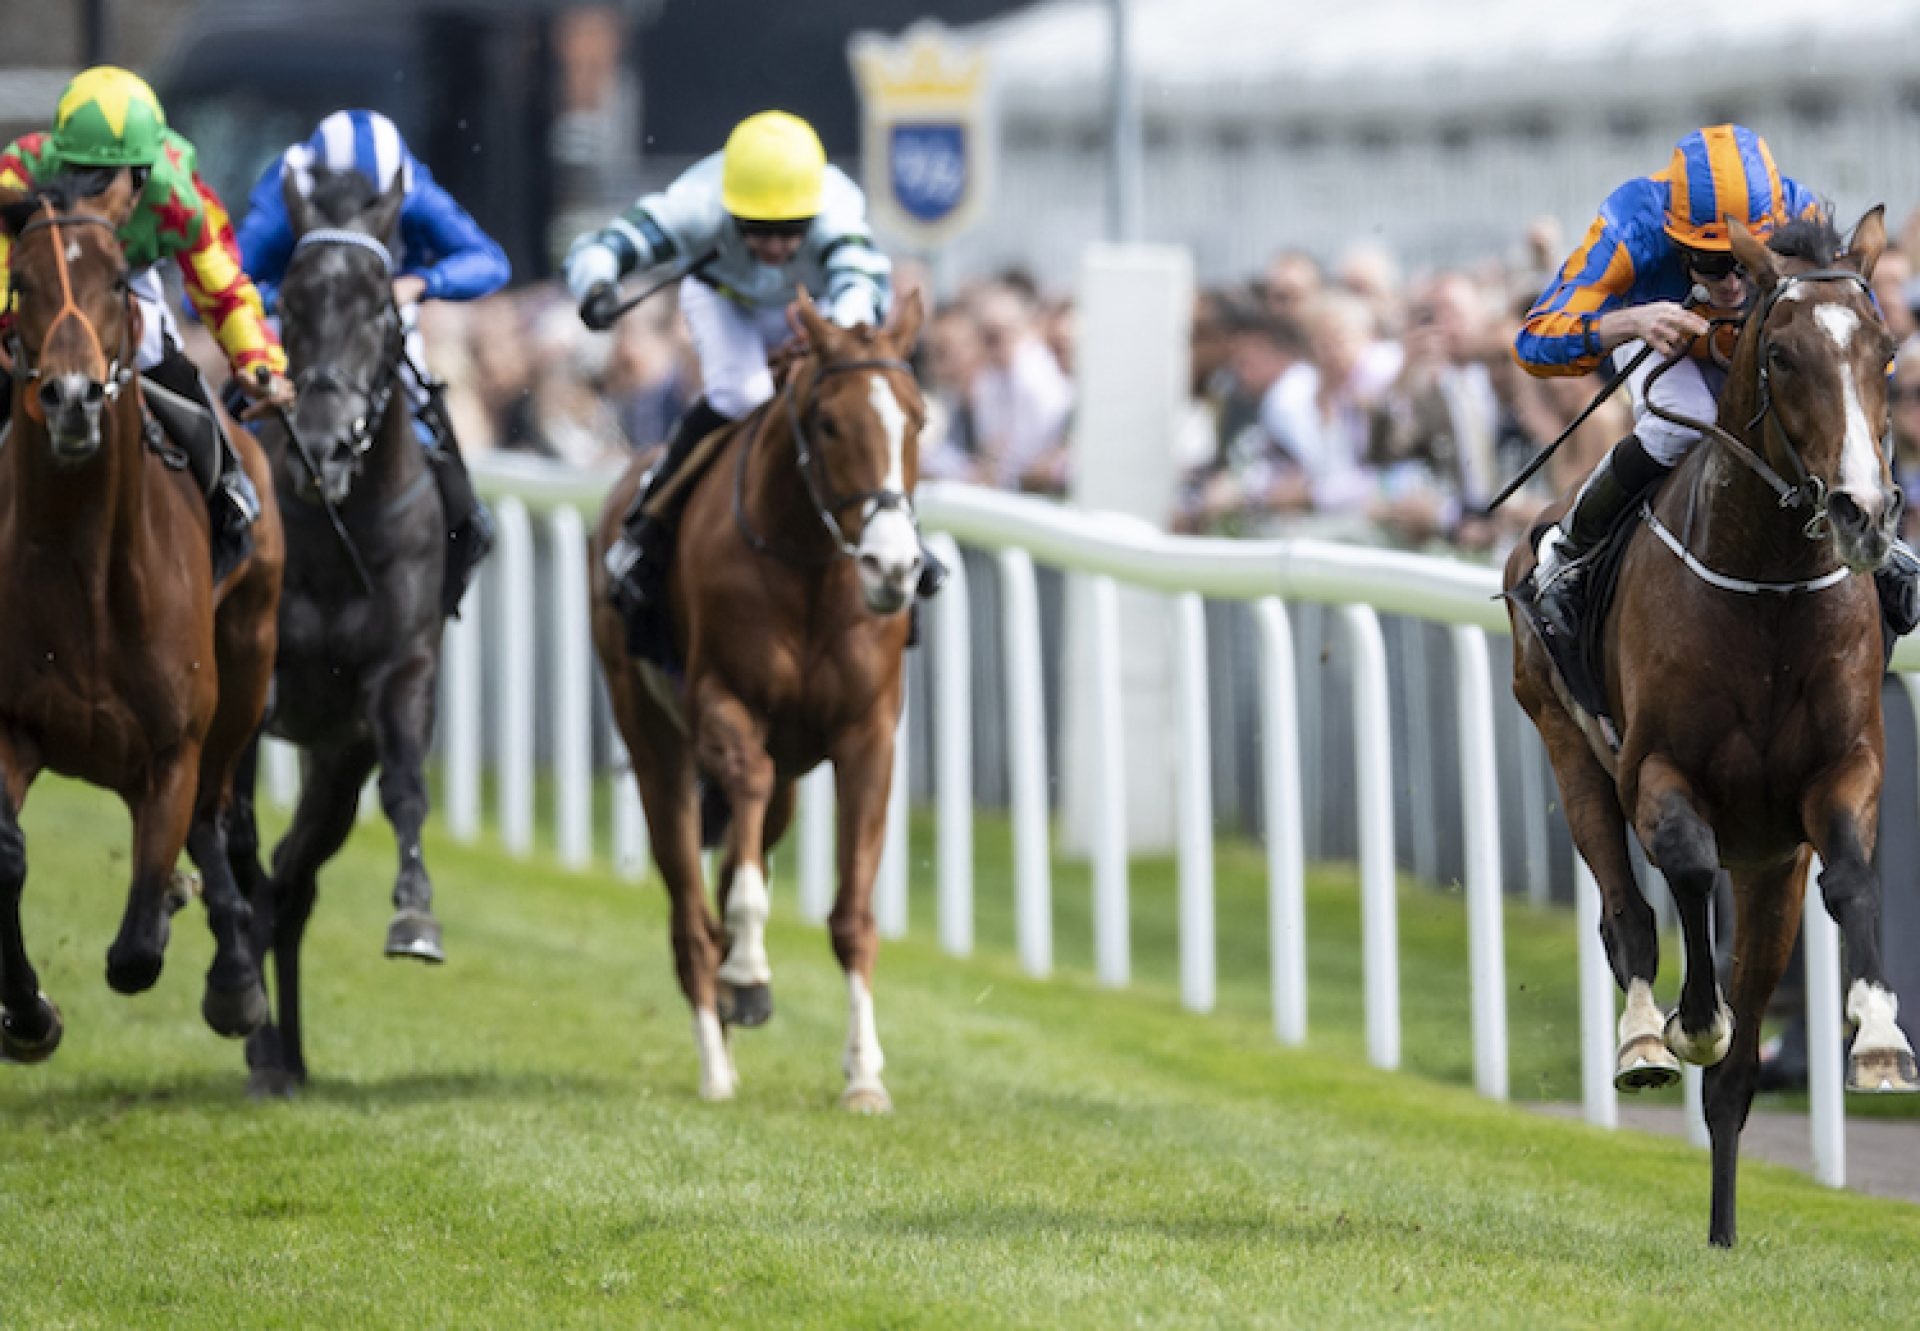 Idaho (Galileo) winning the G3 Ormonde Stakes at Chester